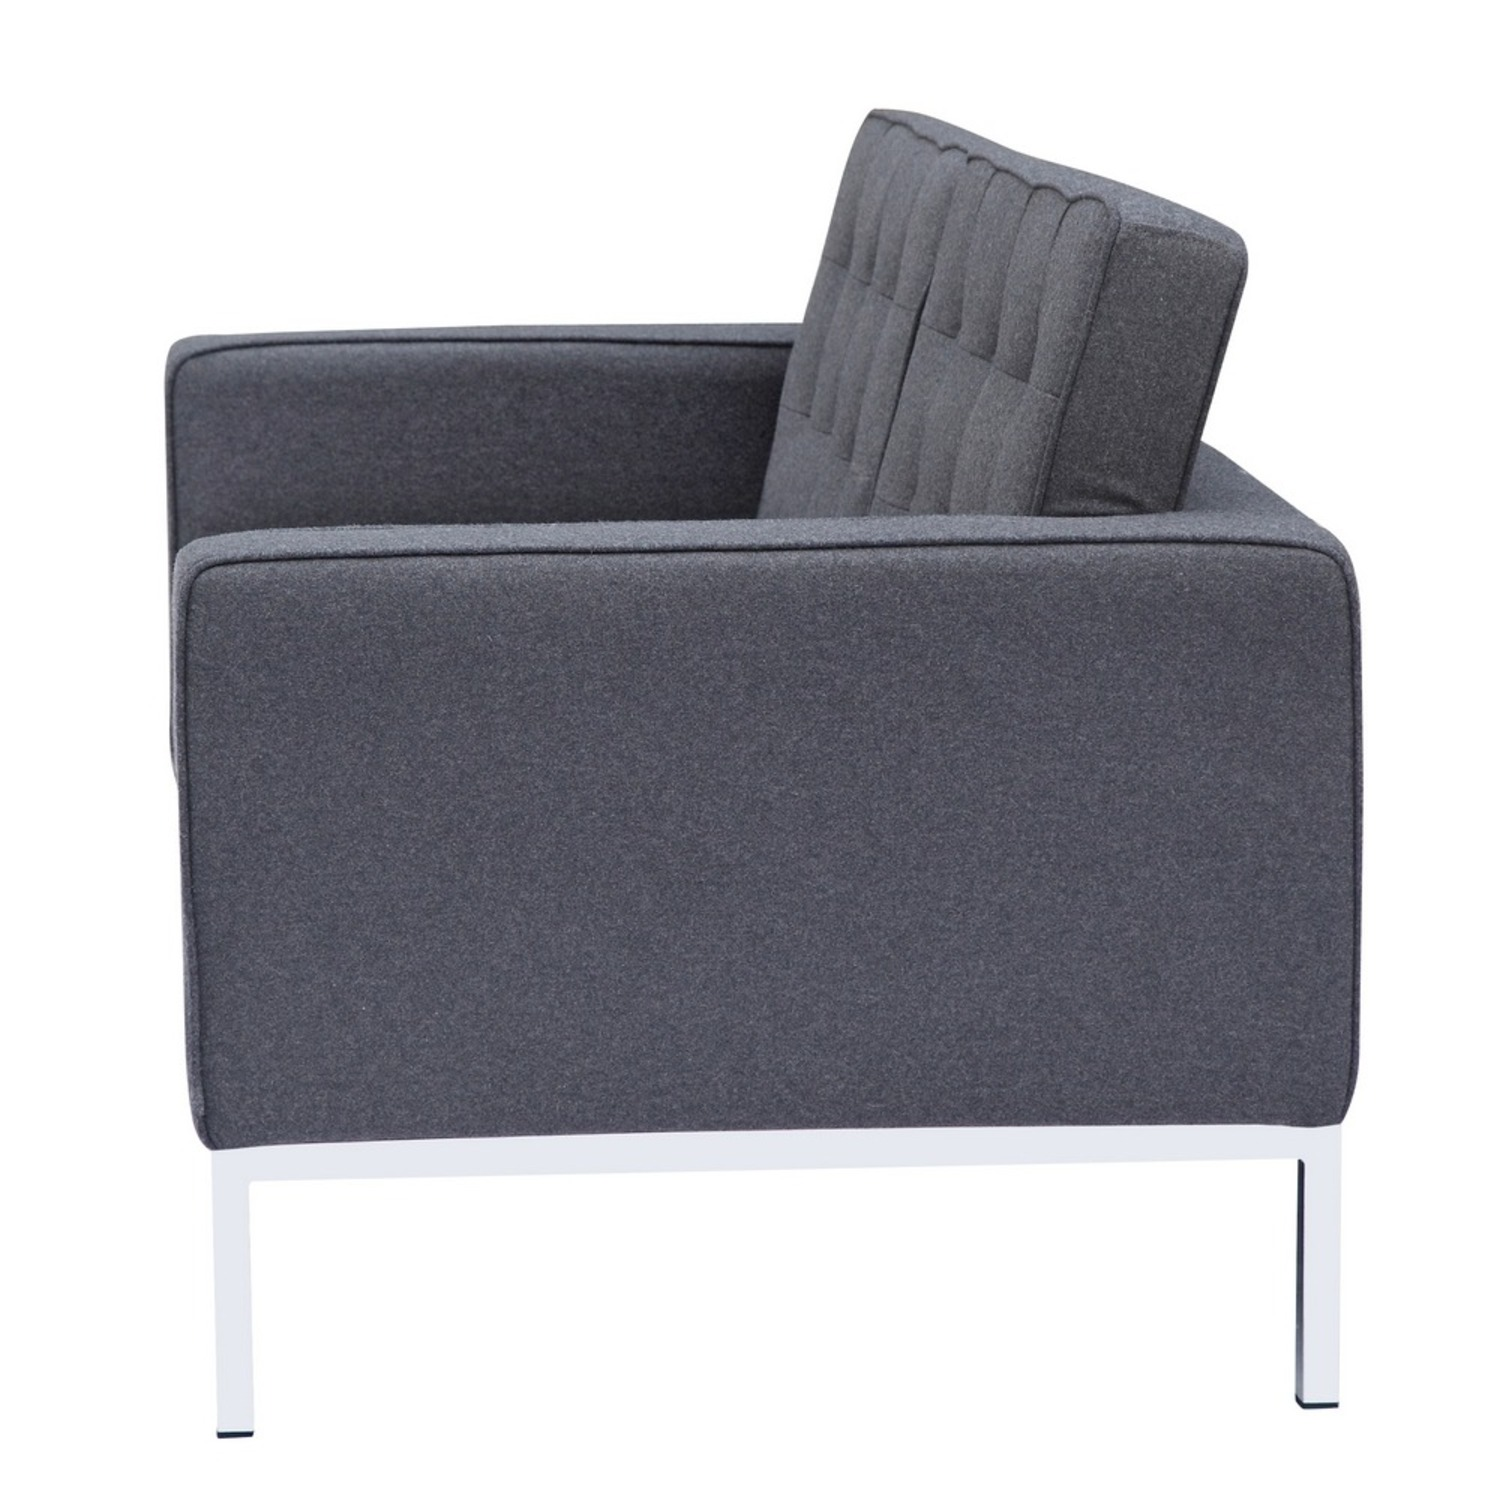 Contemporary Loveseat In Gray Wool Fabric - image-3